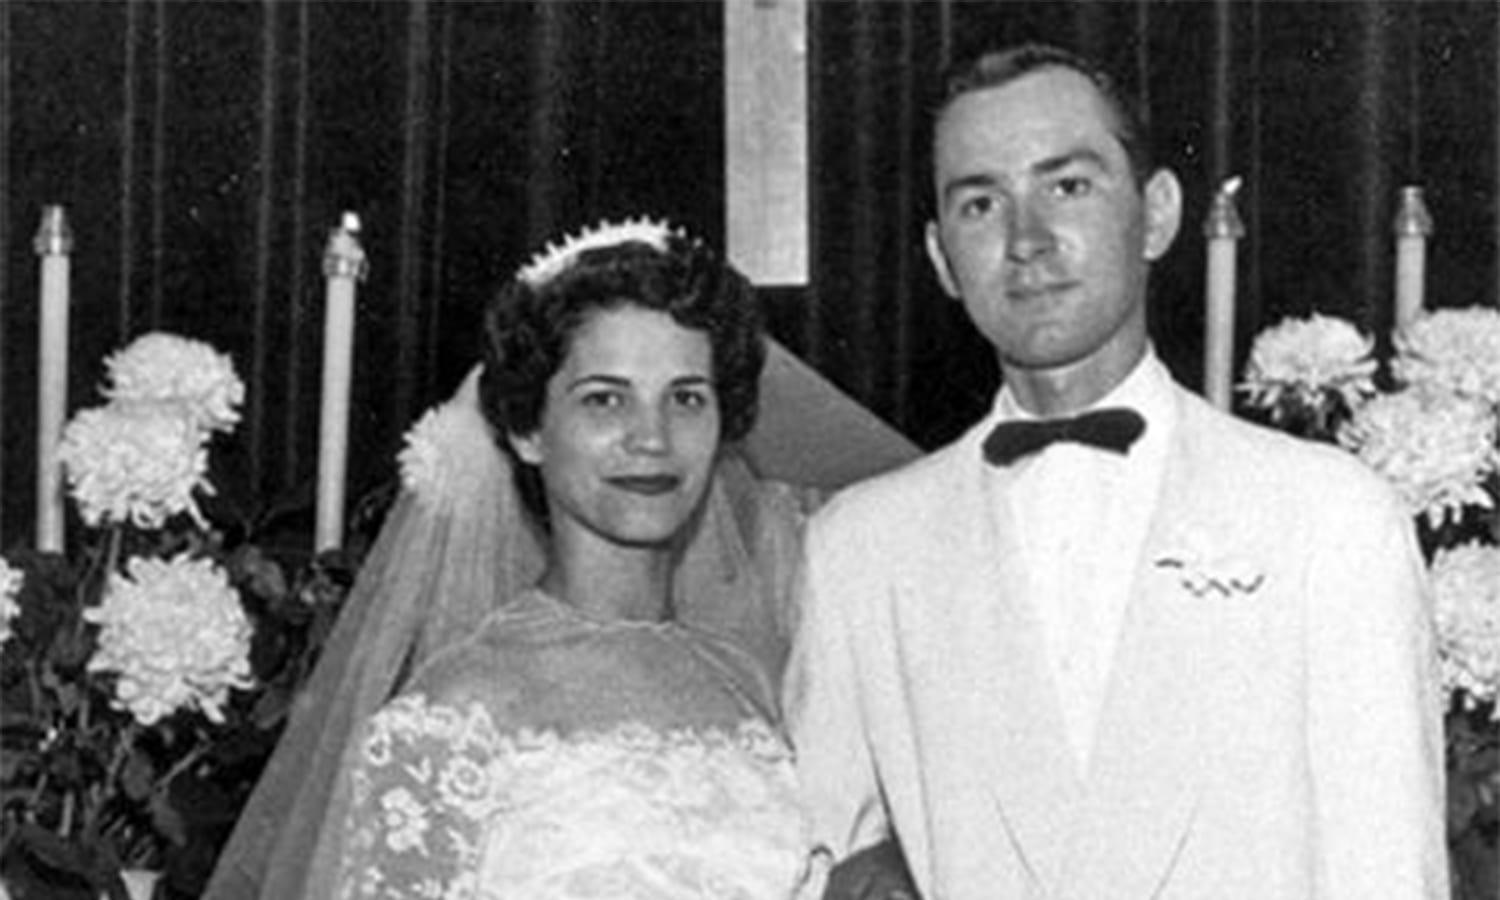 Eva and Ernie Serrano on their wedding day 1952